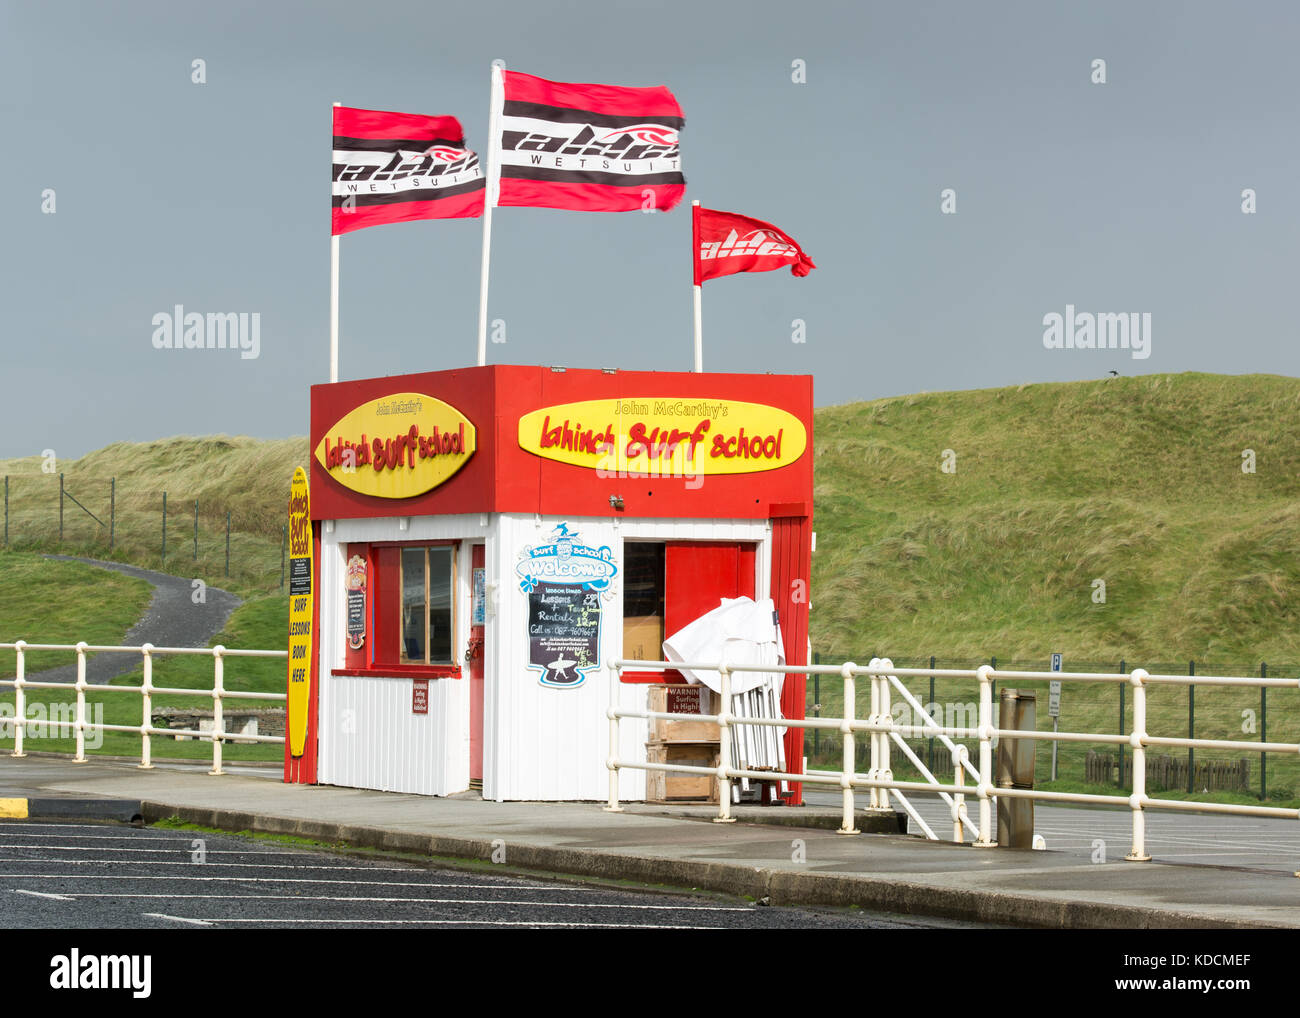 Lahinch Surf School kiosk at Lahinch beach in County Clare, Ireland - Stock Image